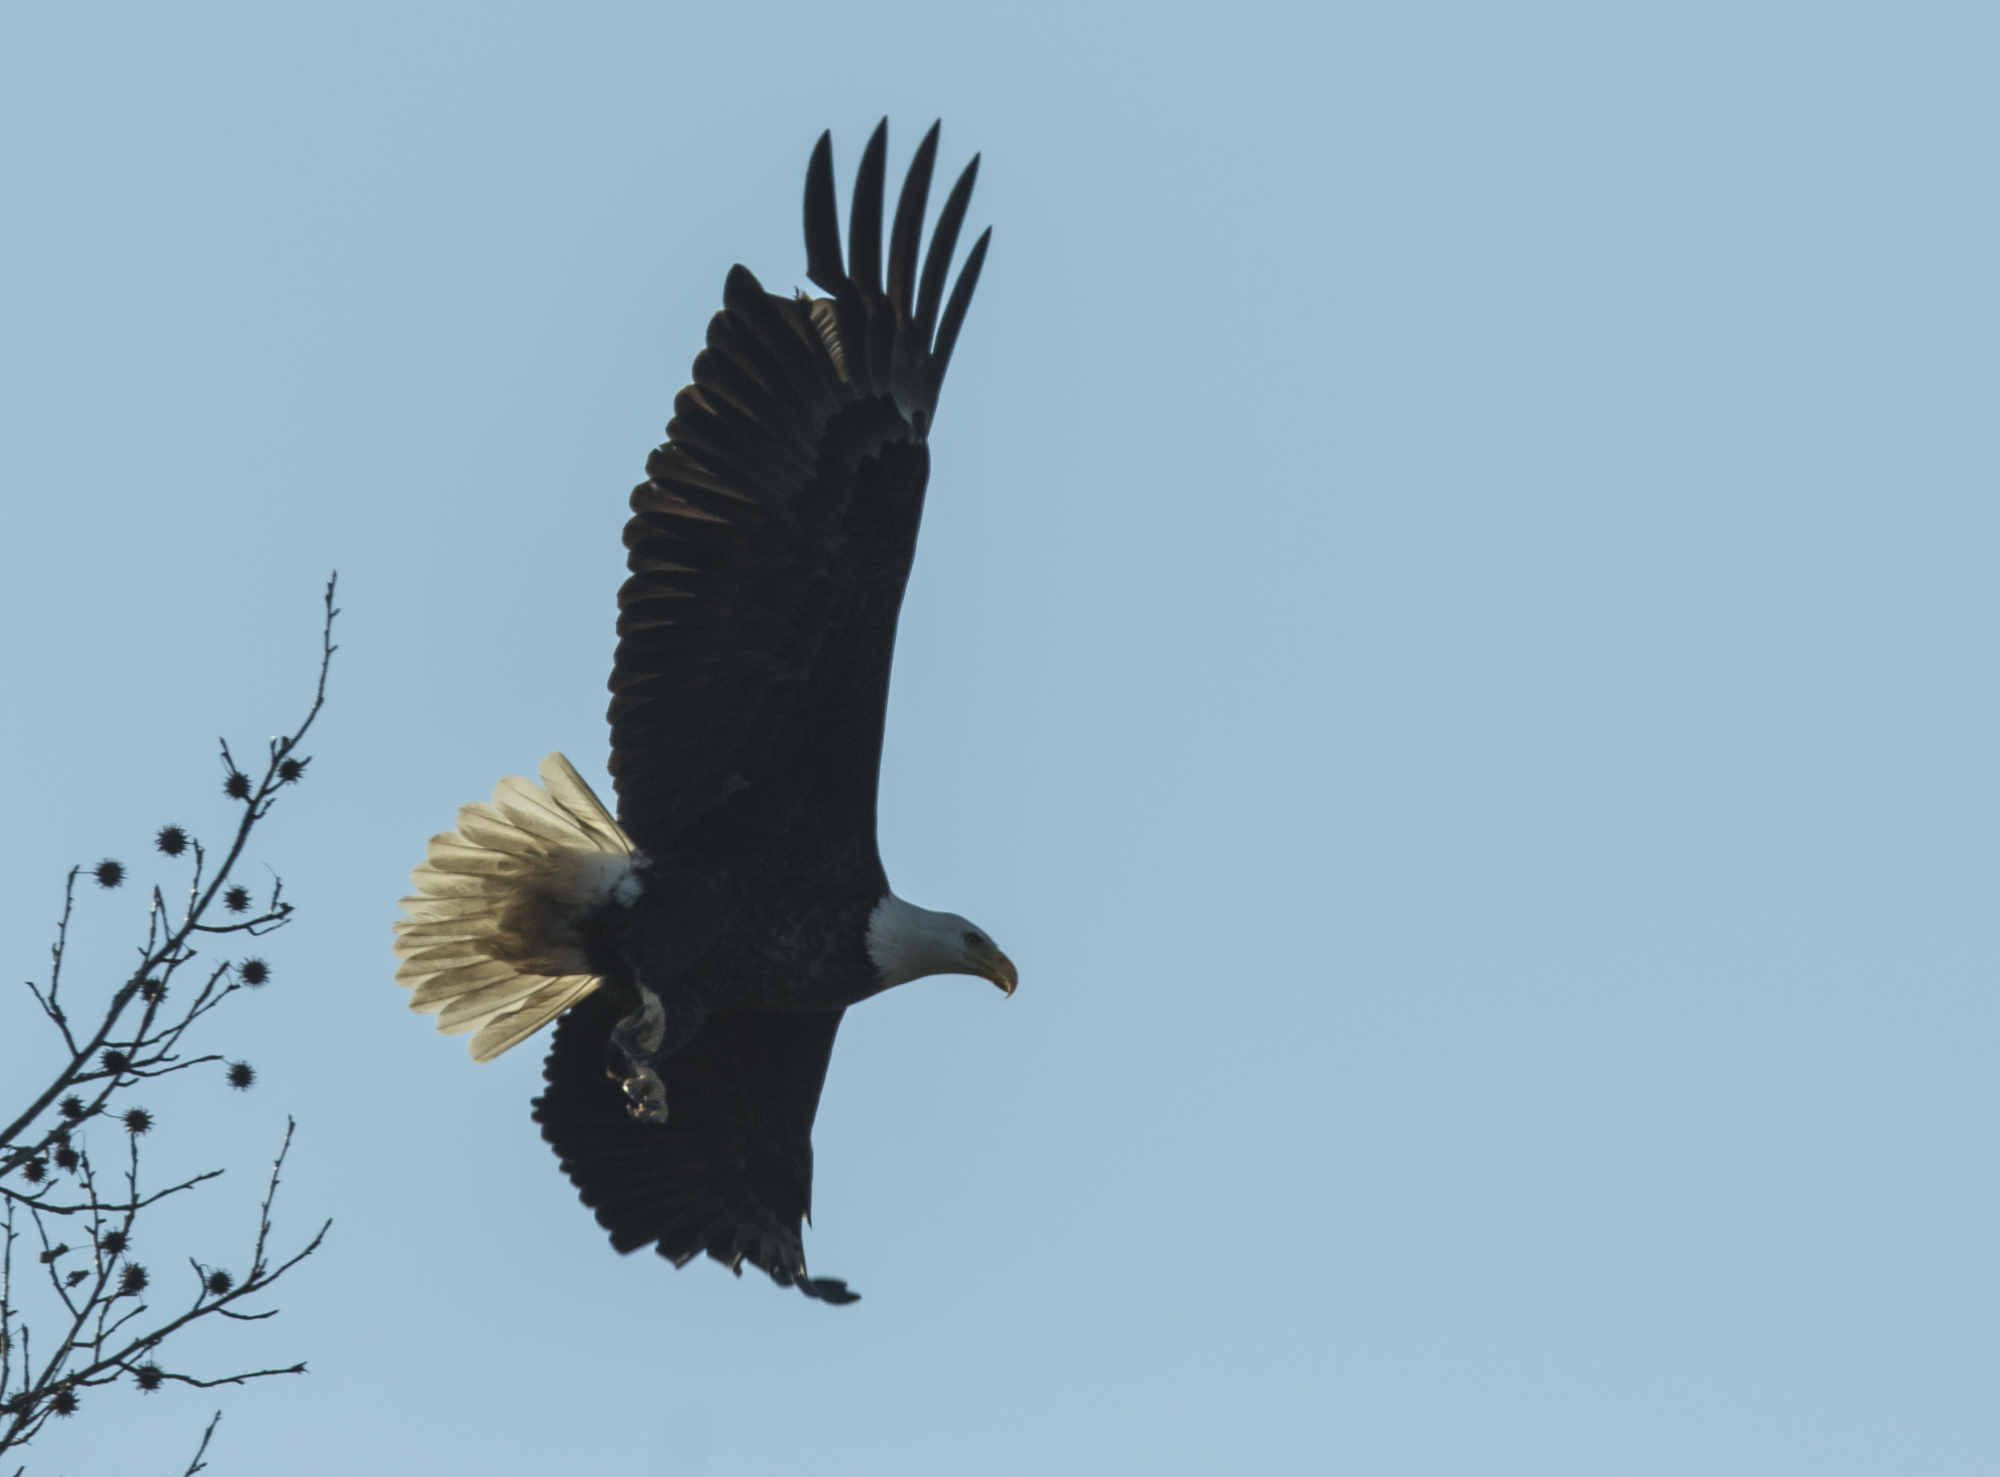 Bald eagle flying away